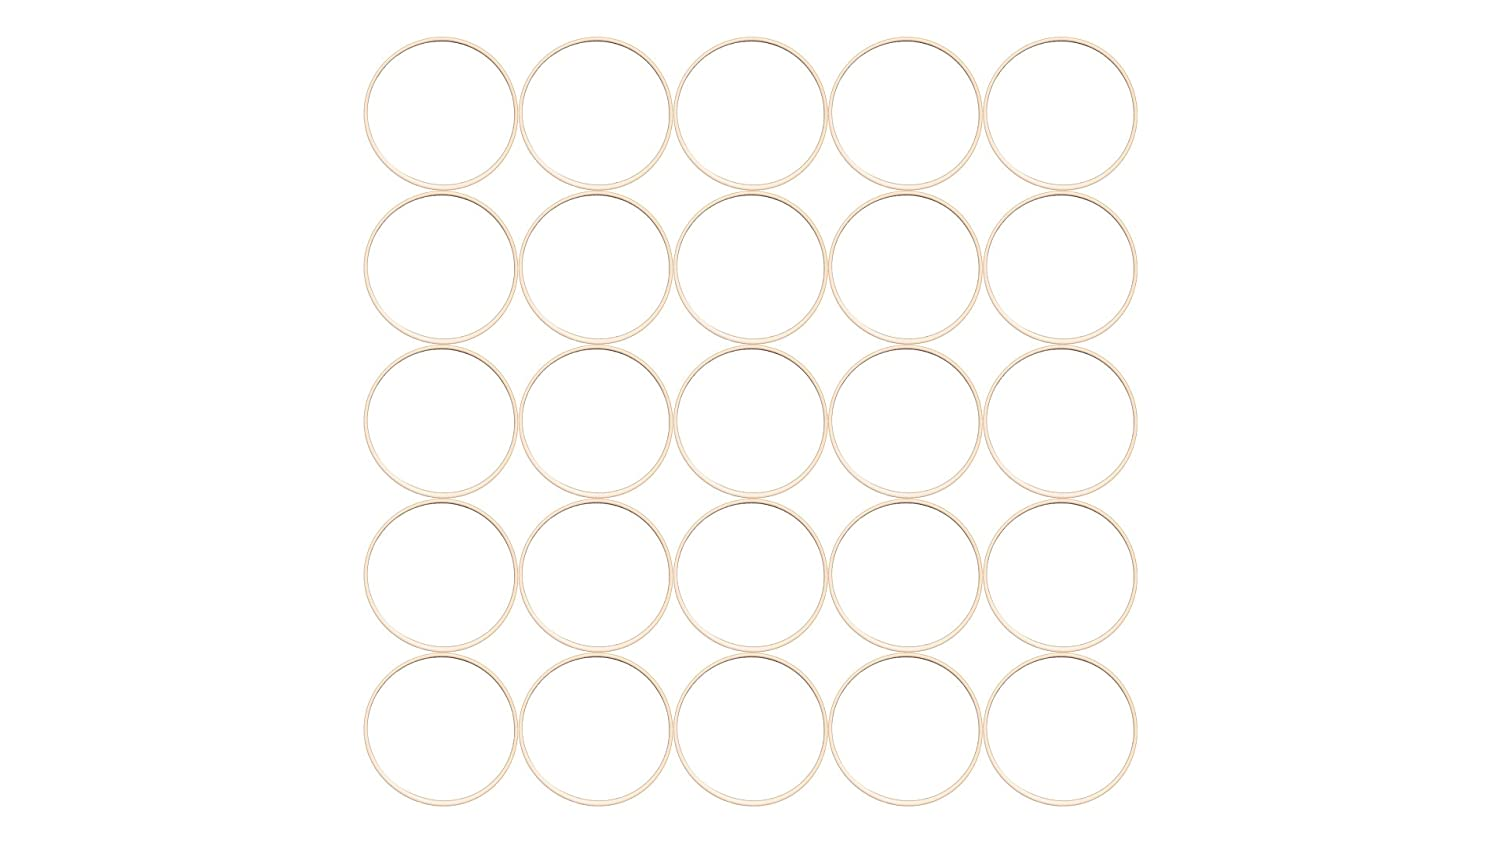 9-3//4 ID 10-1//8 OD Sterling Seal ORTFE376x25 Number-376 Standard Teflon O-Ring Polytetrafluoro-Ethylene Outstanding Weather Resistance Sur-Seal Pack of 25 9-3//4 ID 10-1//8 OD Pack of 25